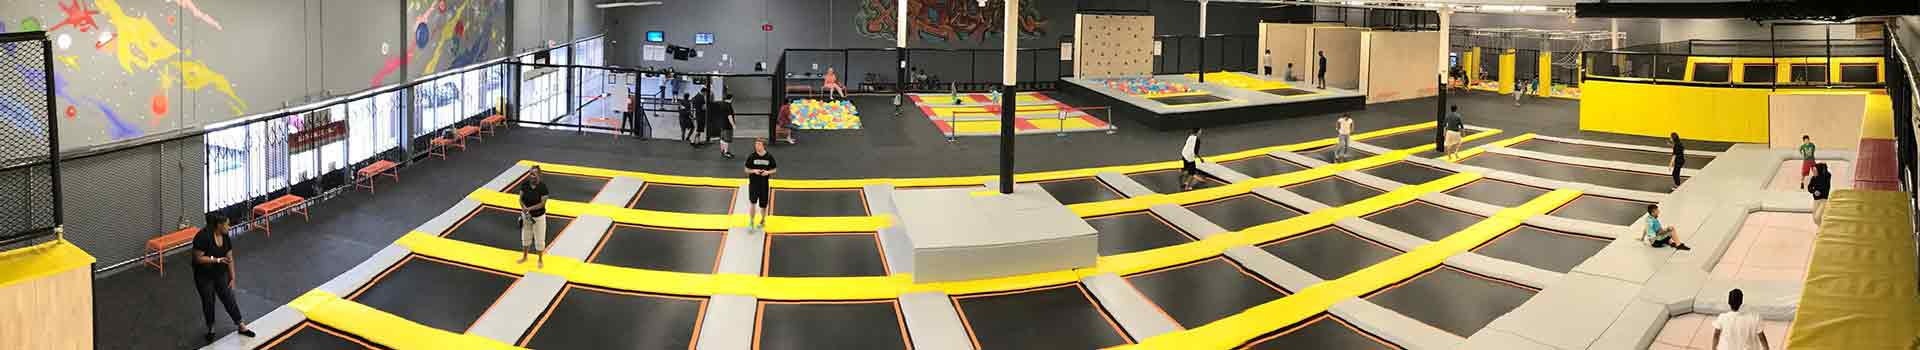 China Professional Trampoline Park Manufacturer-Liben Group Corporation